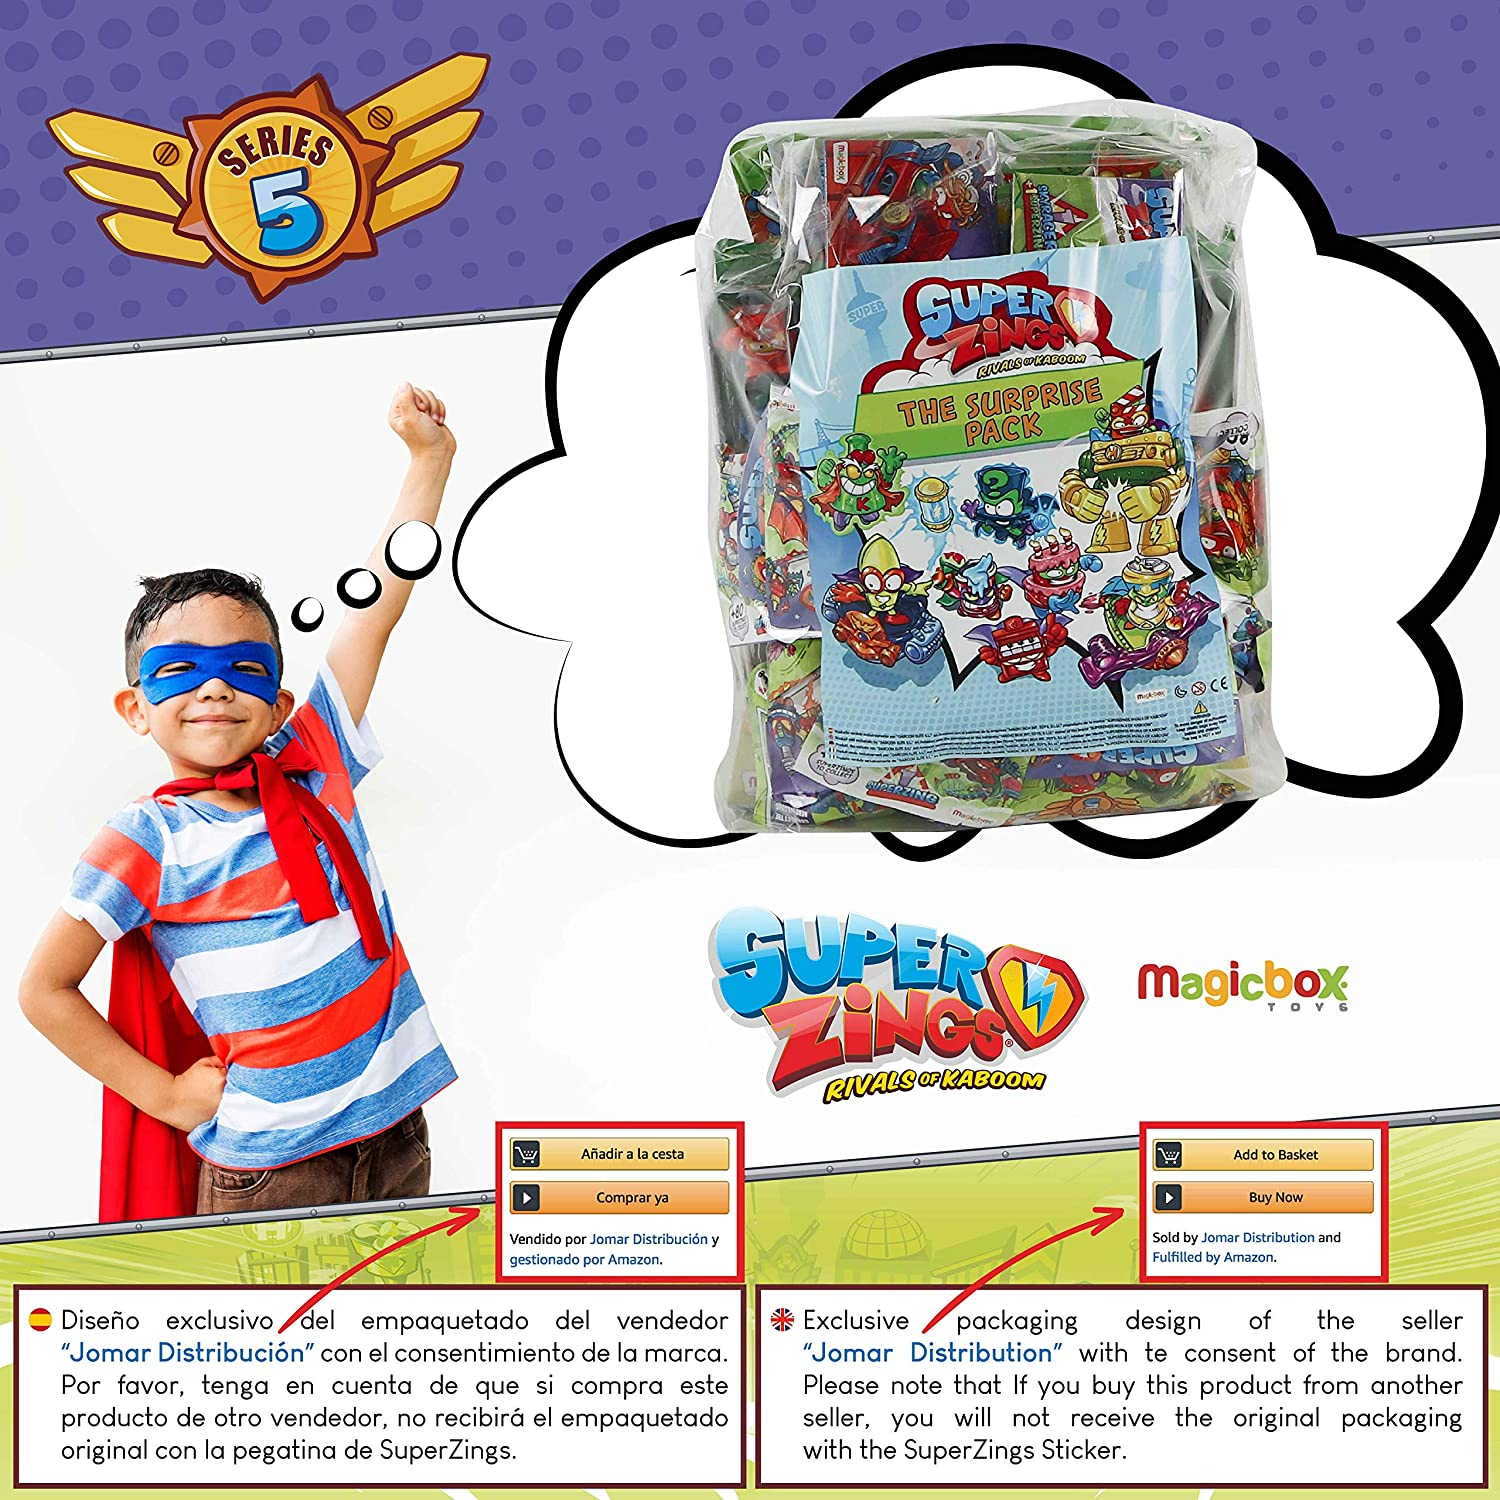 SuperZings Serie 5 - Pizza Riders Mission 3 y Pack Sorpresa con 17 Sets | Contiene Blíster Pizza Riders, 10 Sobres One Pack, 6 Aerowagons y 1 Skyracer | Juguetes y Regalos